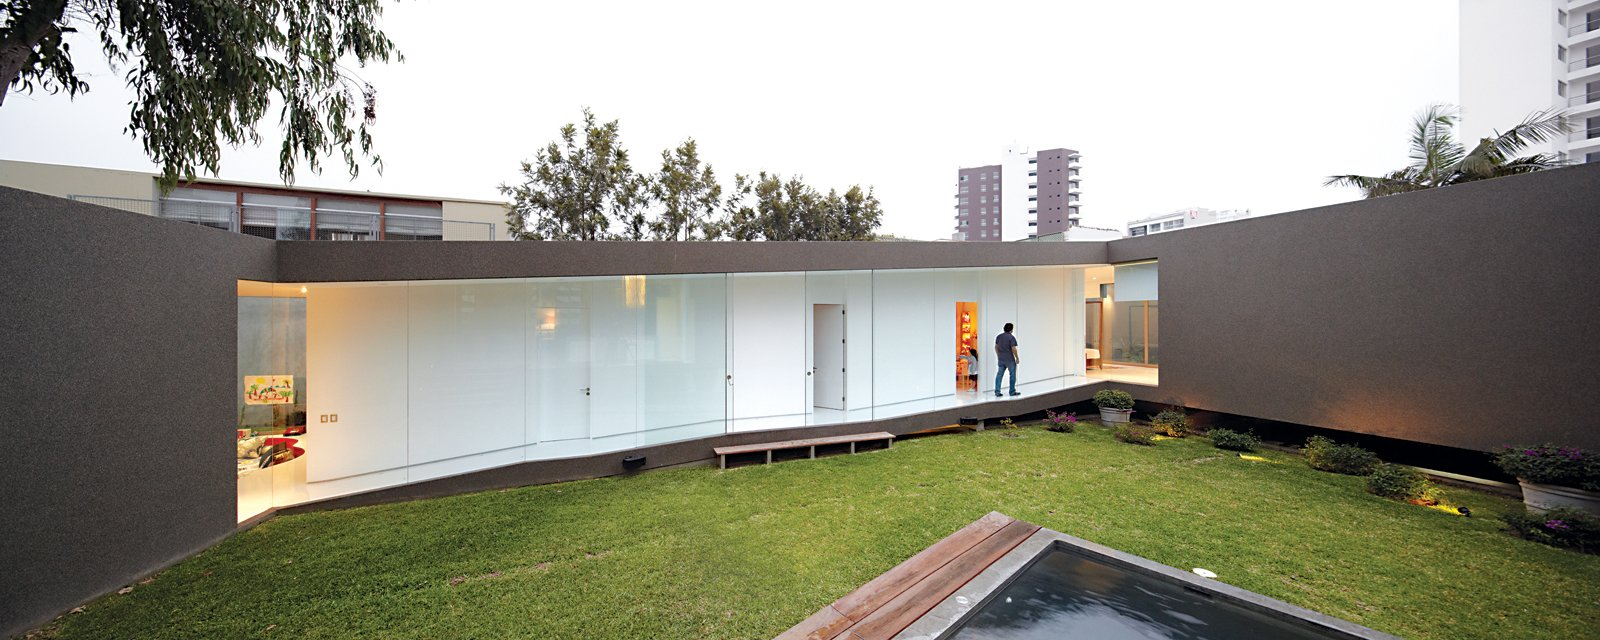 Exterior, House Building Type, and Concrete Siding Material At once part of the city and protected from it, the house benefits from plenty of open space and light and creates its own courtyard enclosure.  Photos from A Modern Concrete Home in Peru